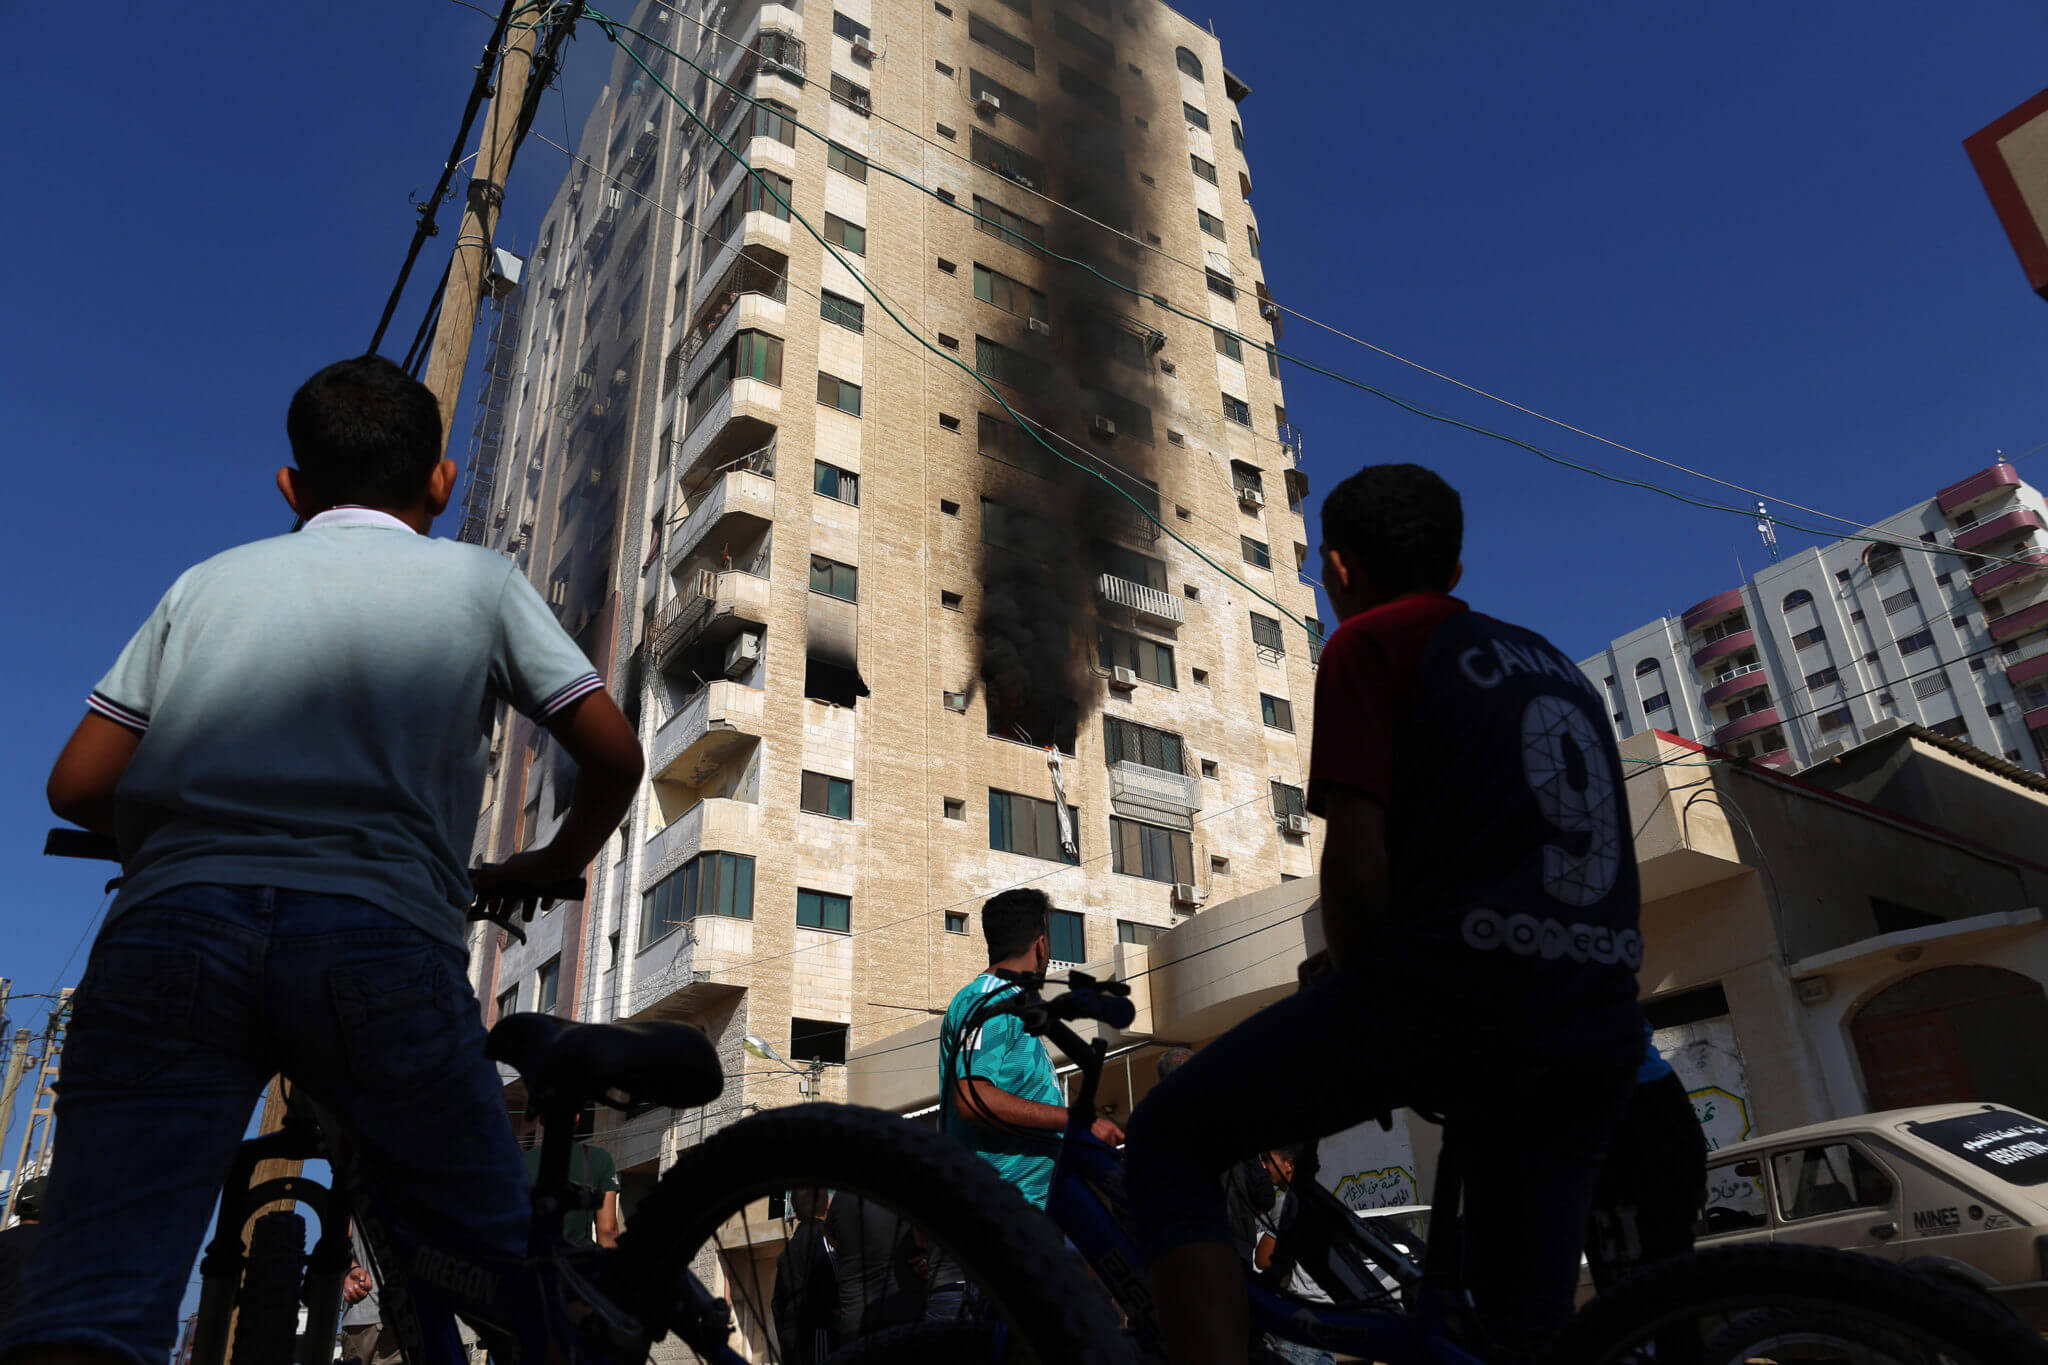 Palestinians inspect the remains of a building following an Israeli airstrike. (Photo: by Mohammed Zaanoun / Activestills.org)